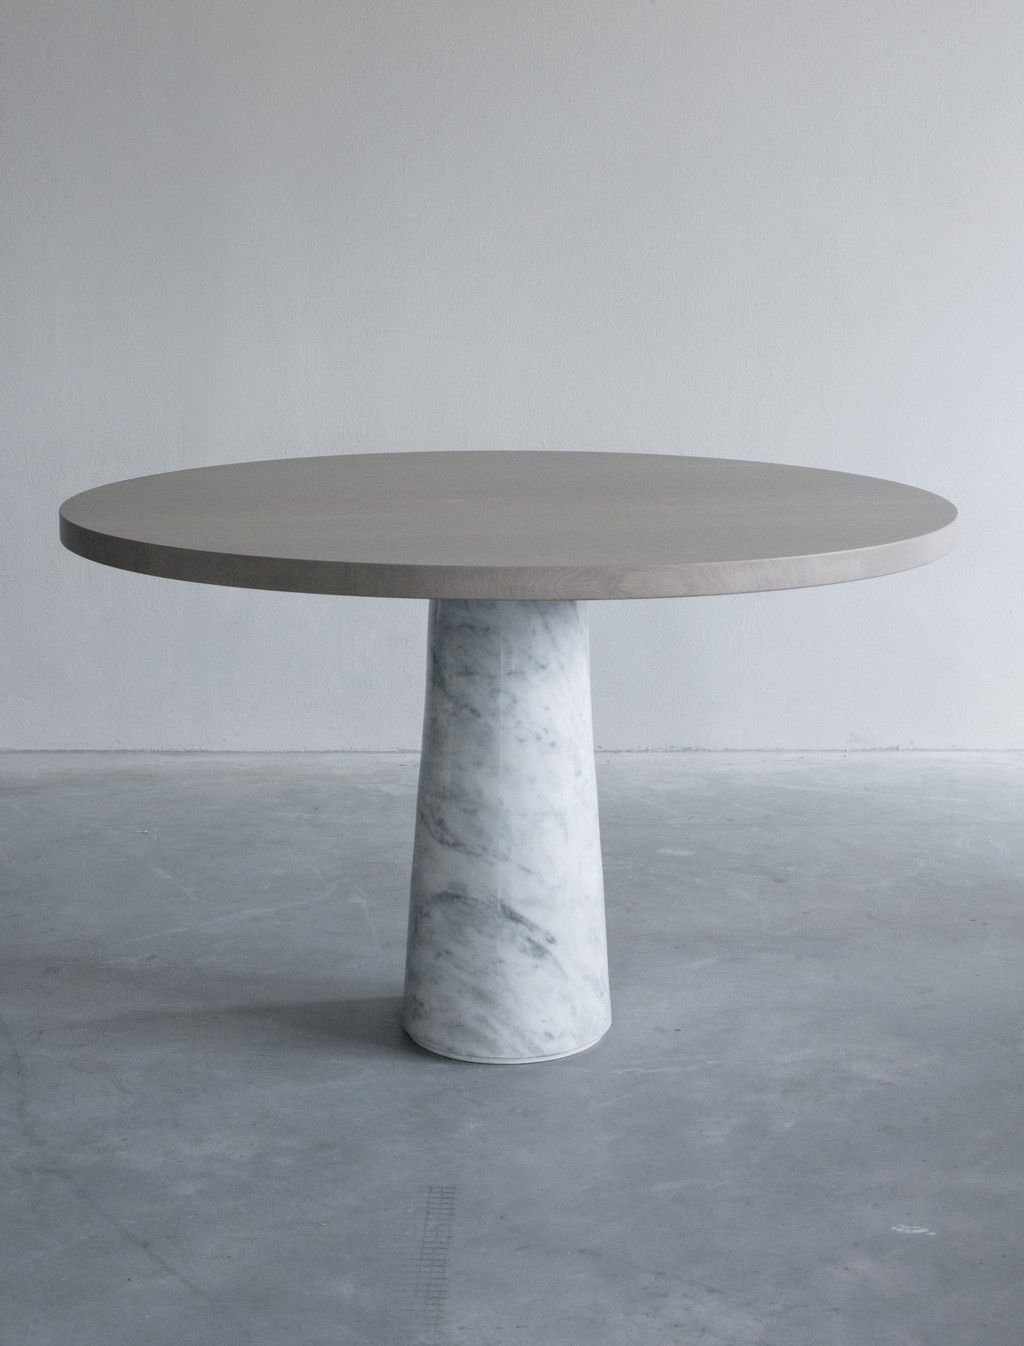 Stone dining table with Carrara marble base - eetkamertafel met ...